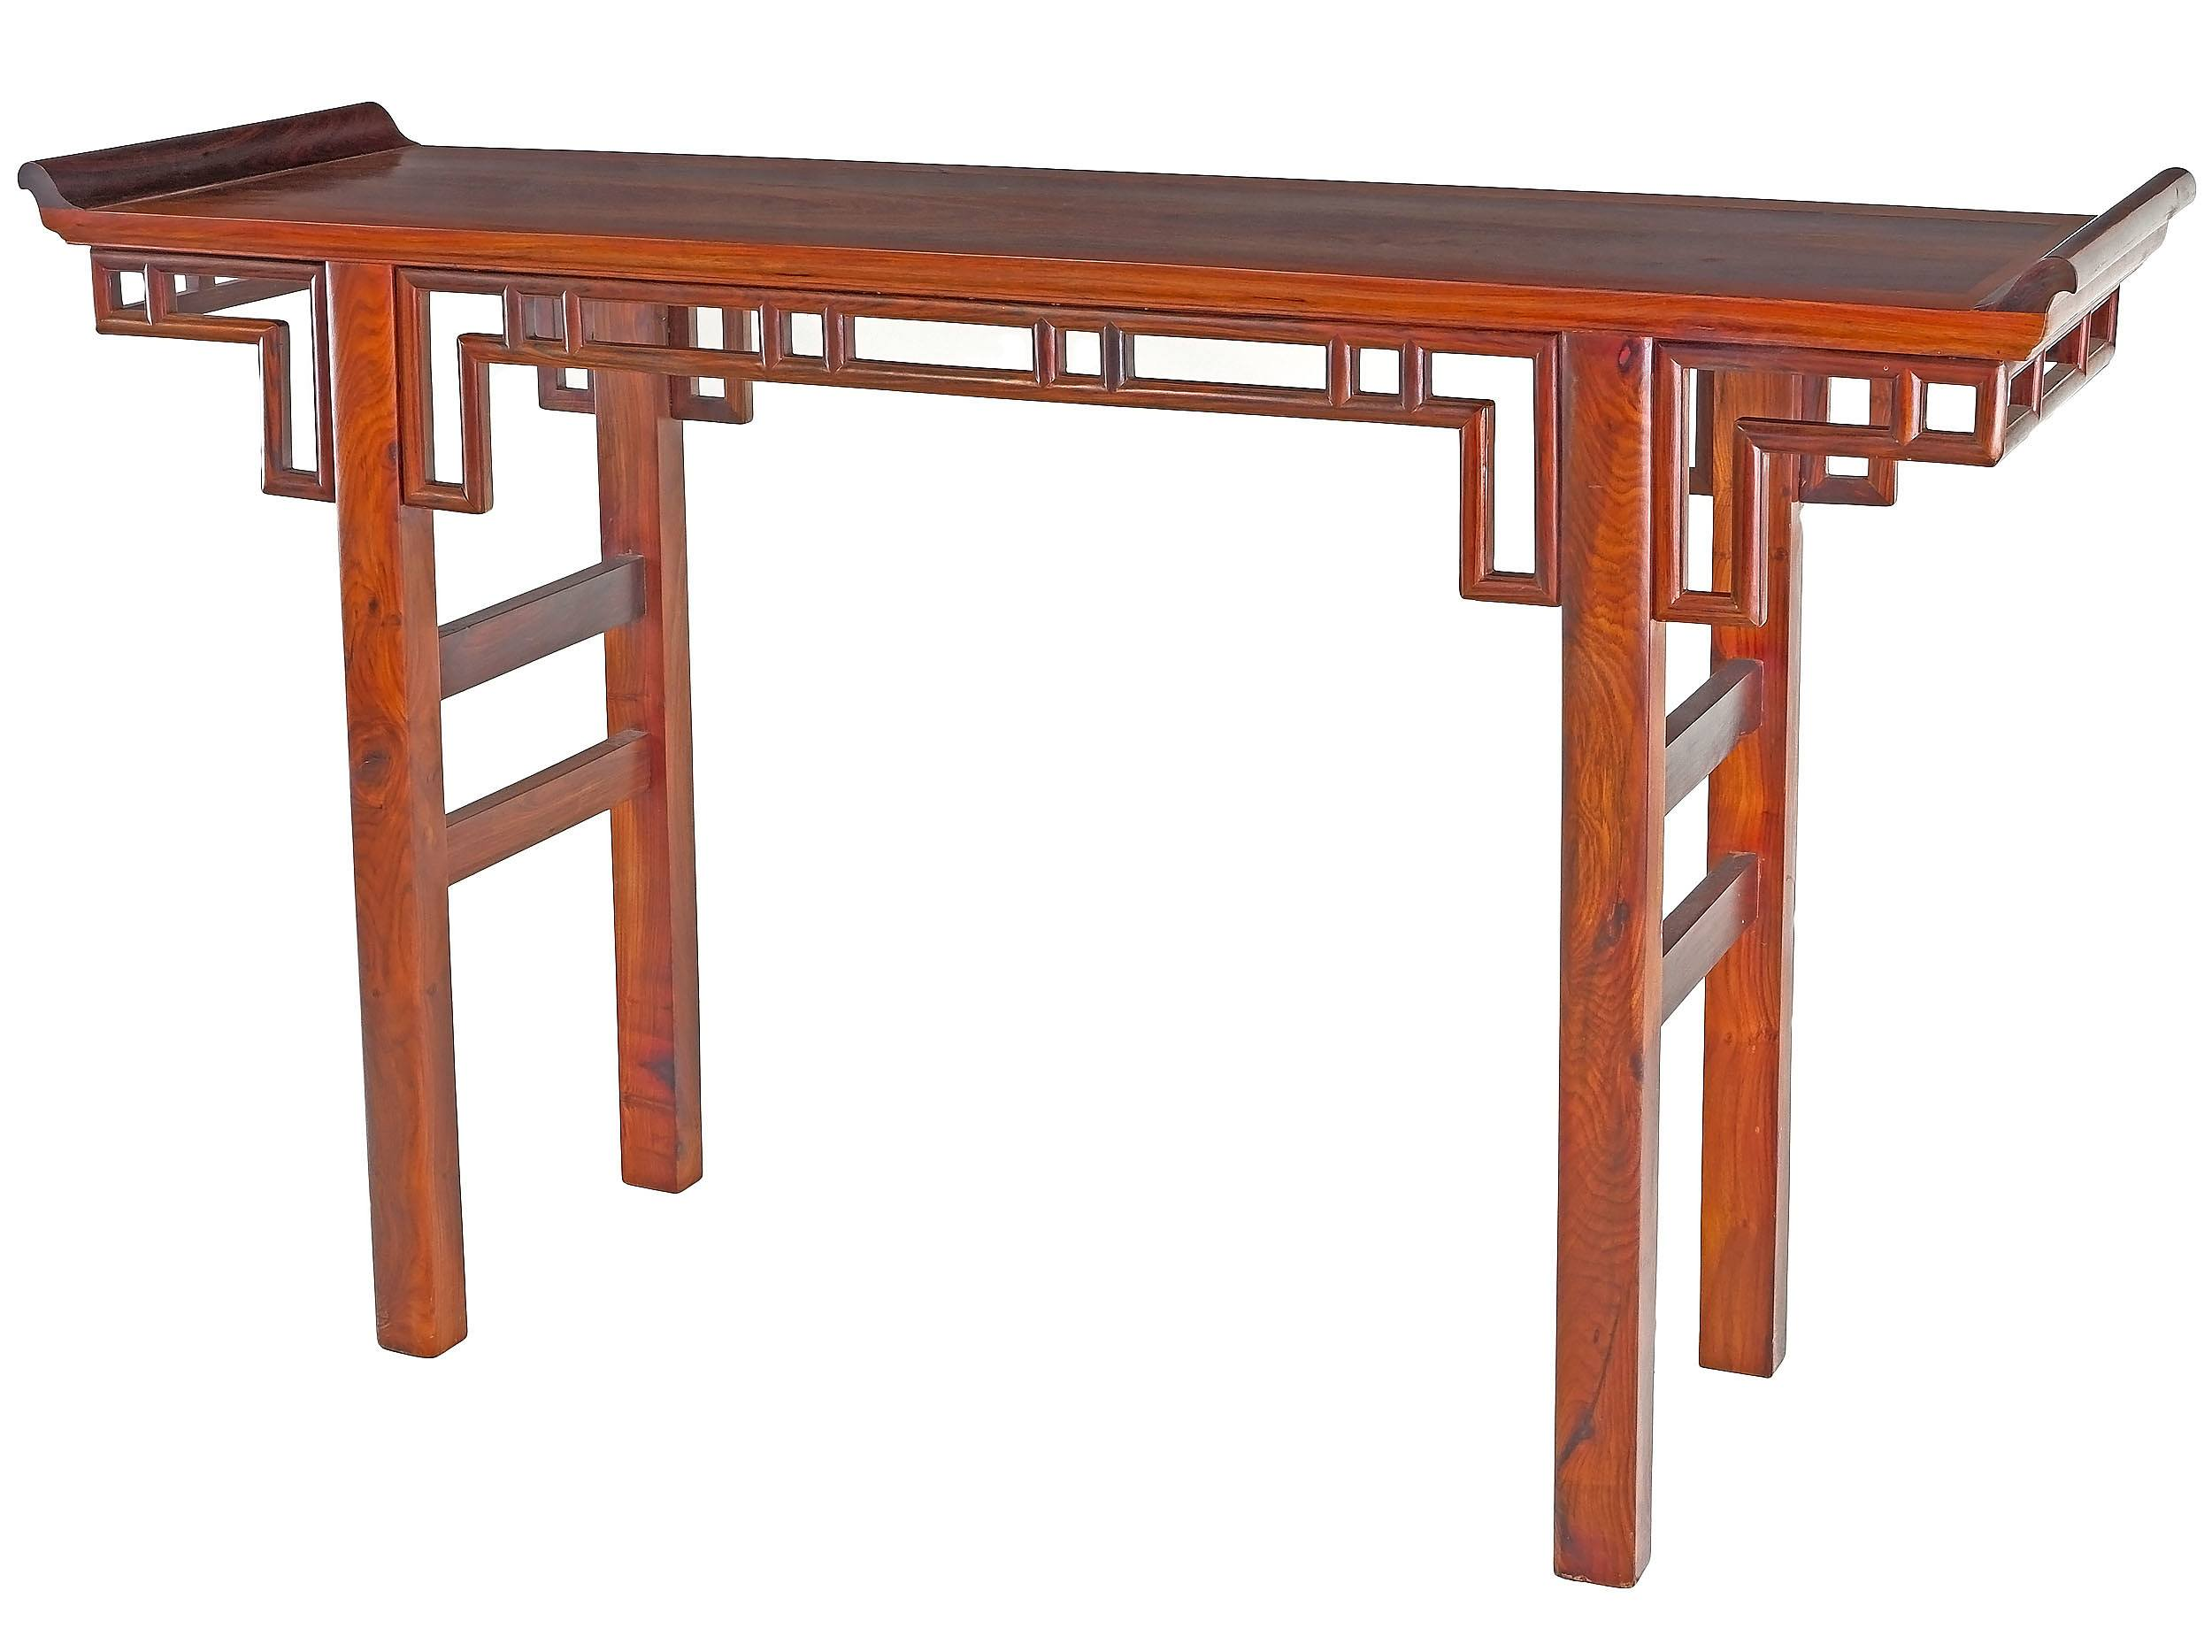 'Chinese Huanghuali Type Rosewood Altar Table with Exceptional Grain Figure, Mid to Late 20th Century'